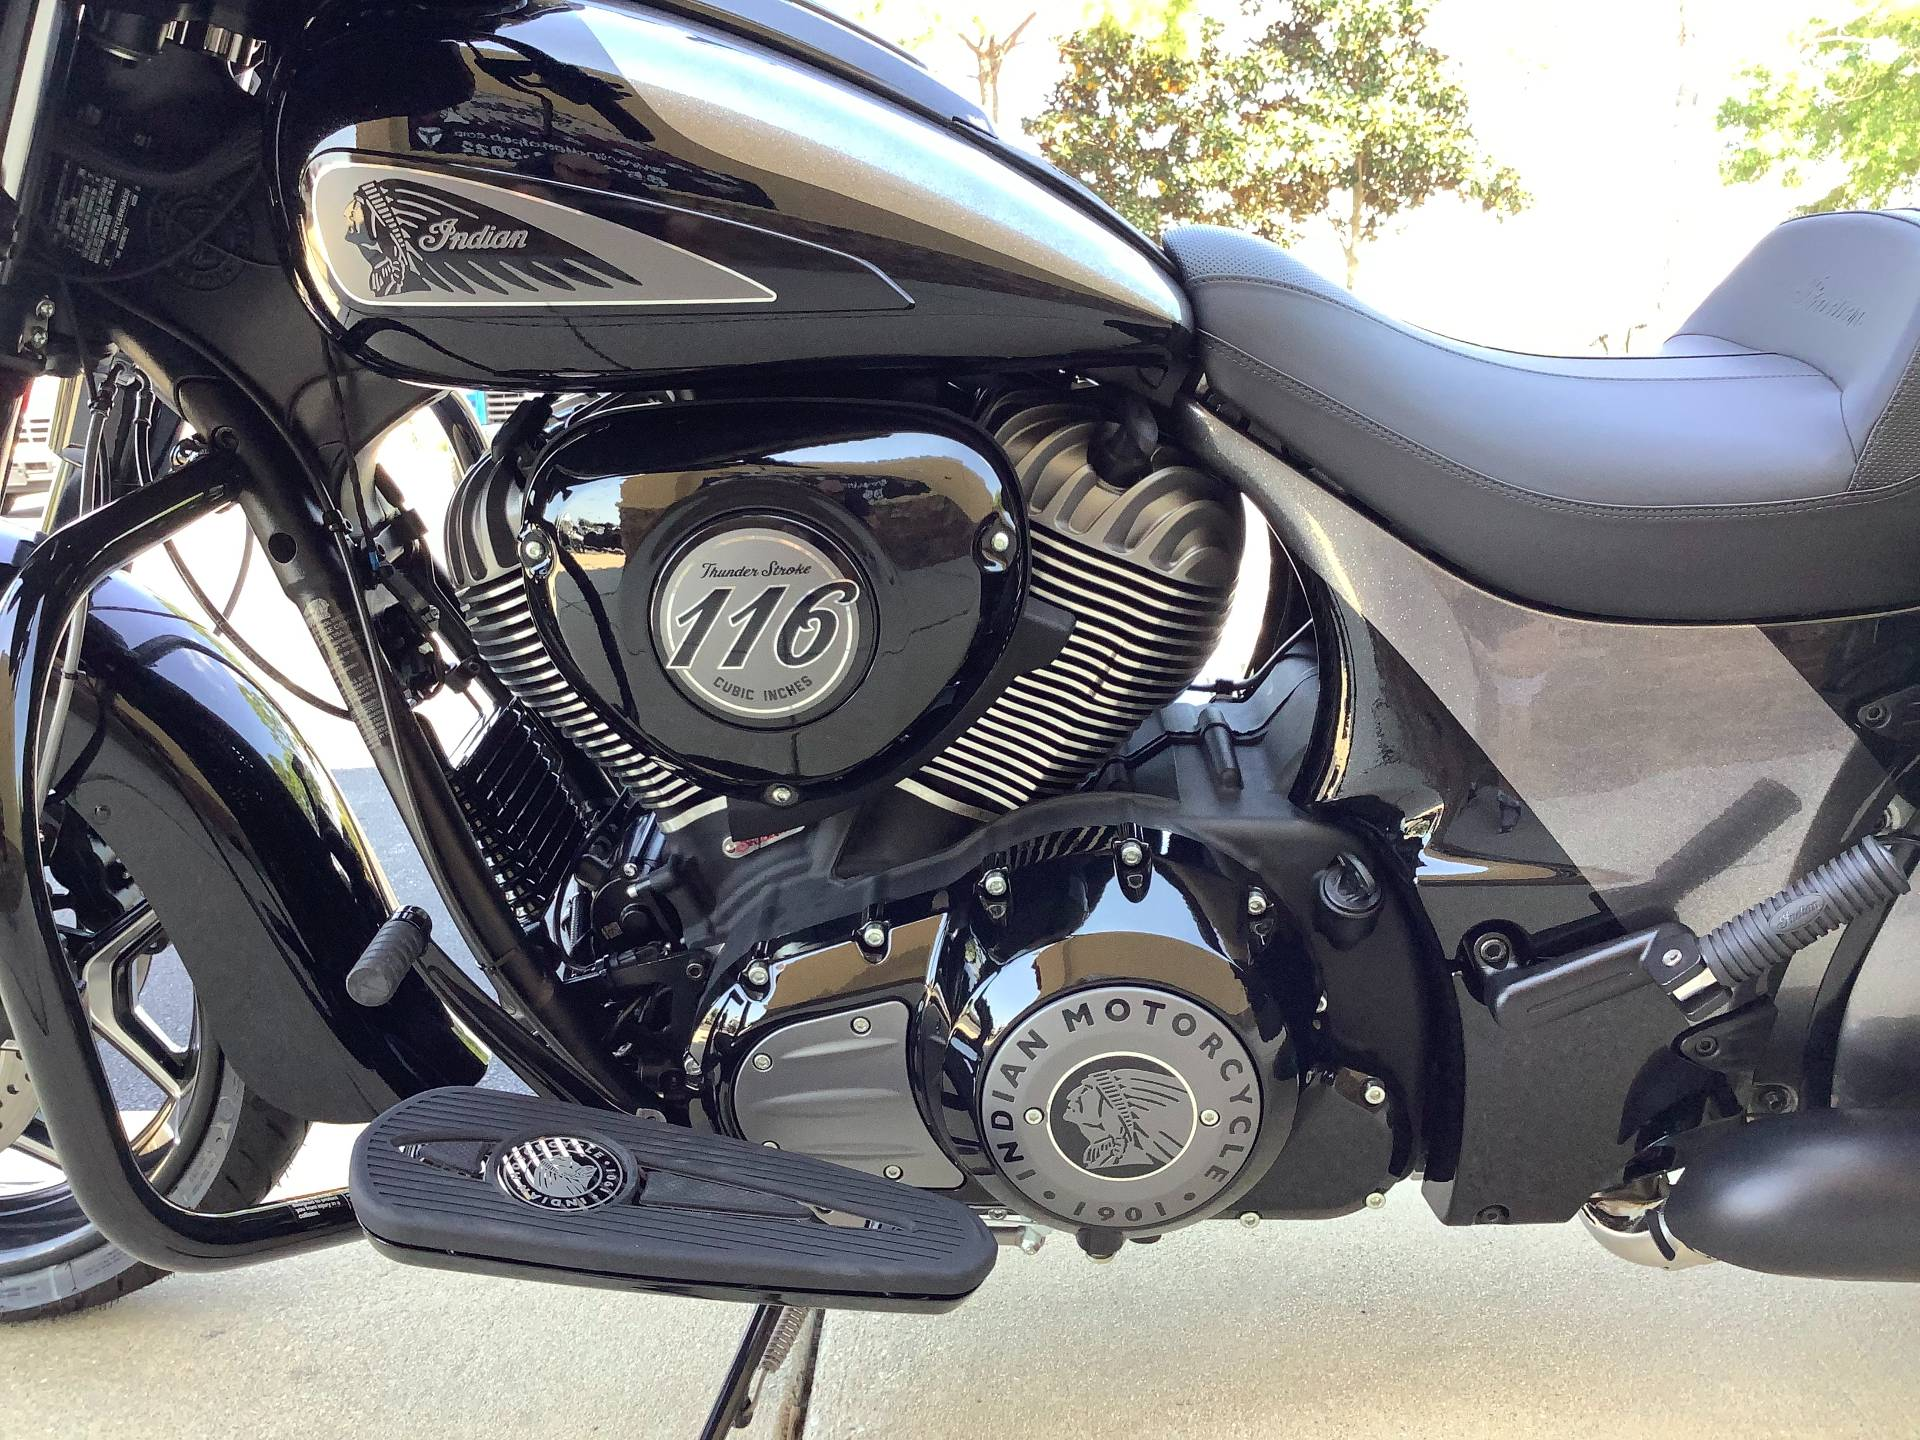 2021 Indian CHIEFTAIN ELITE in Panama City Beach, Florida - Photo 14